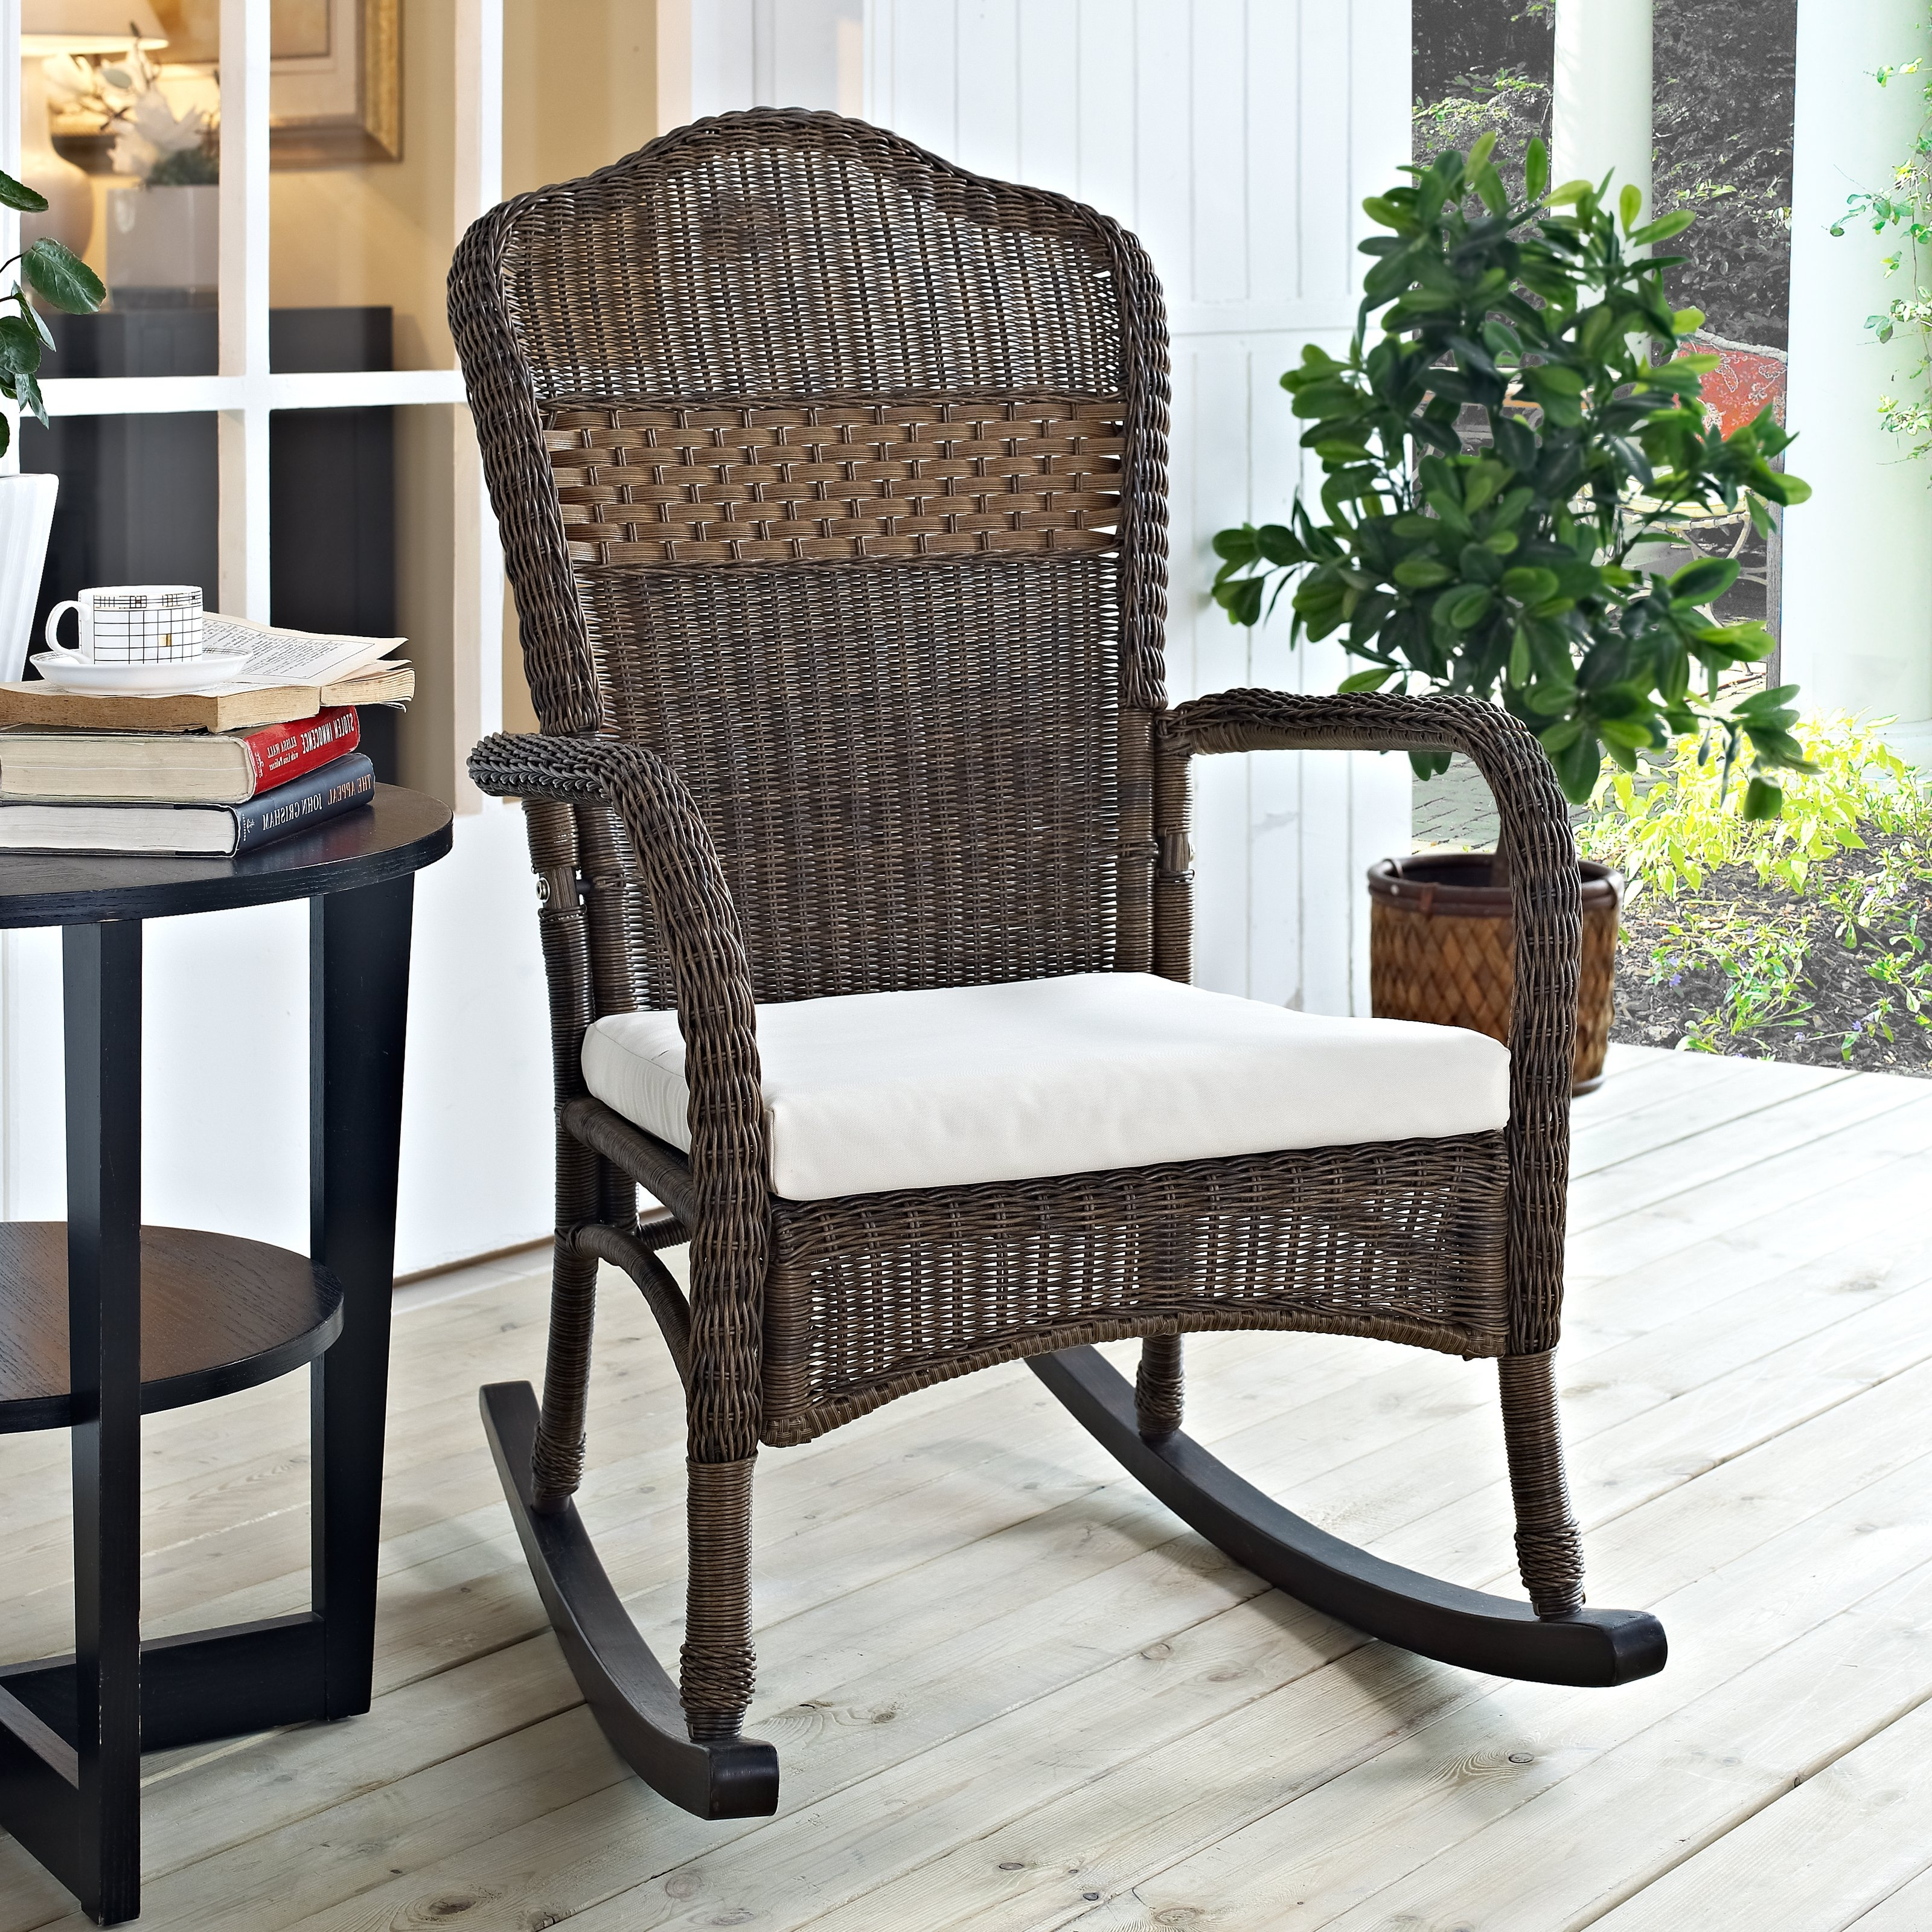 Coral Coast Mocha Resin Wicker Rocking Chair With Beige Cushion With Latest Outdoor Rocking Chairs (View 2 of 15)